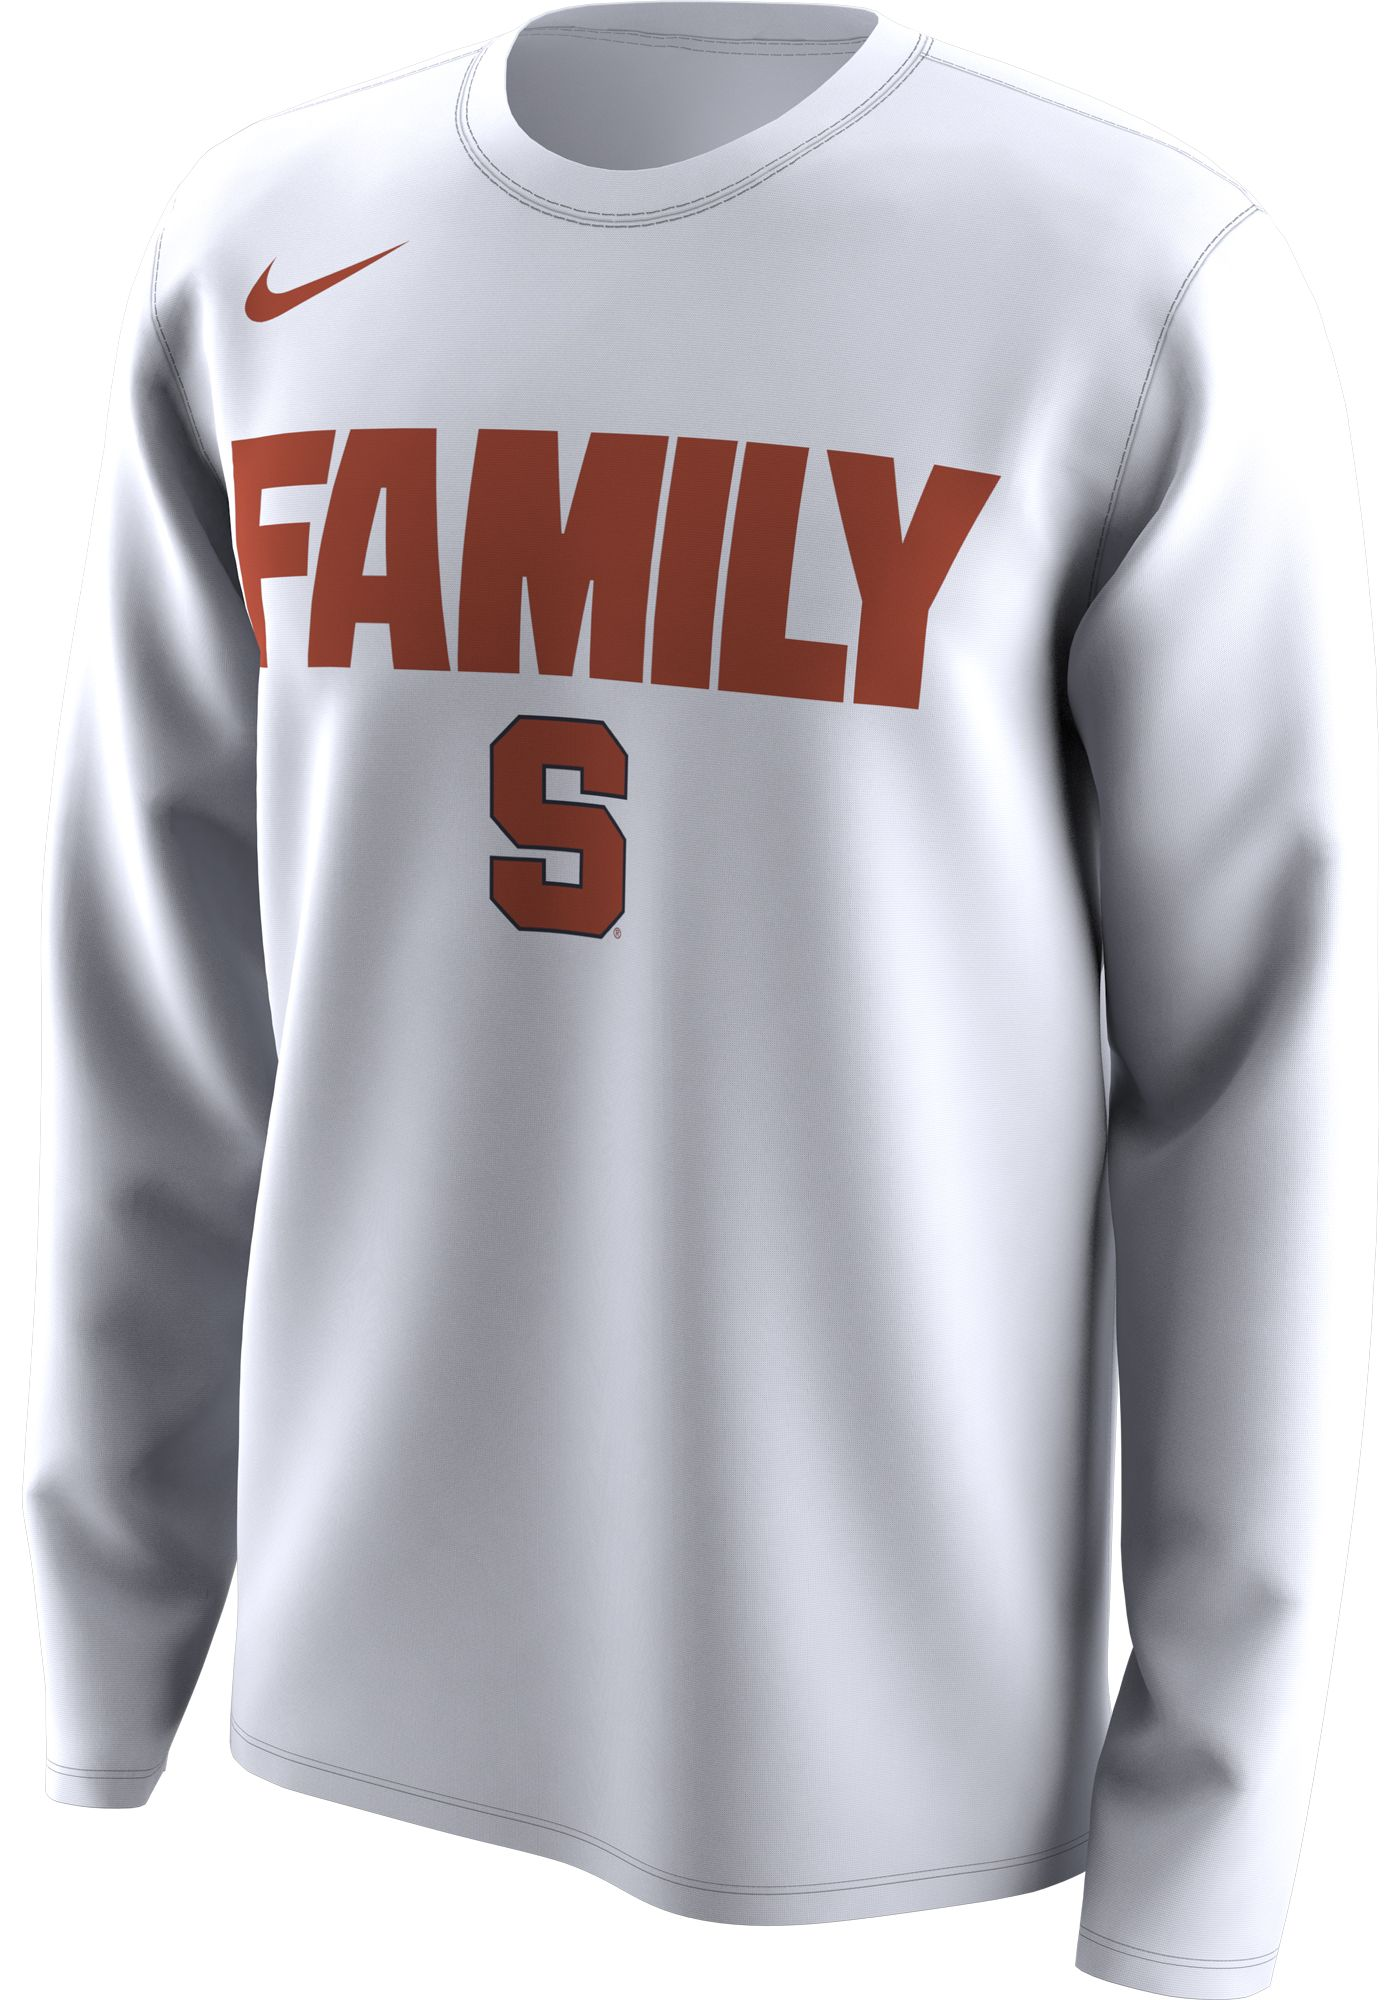 Nike Men's Syracuse Orange 'Family' Bench Long Sleeve White T-Shirt